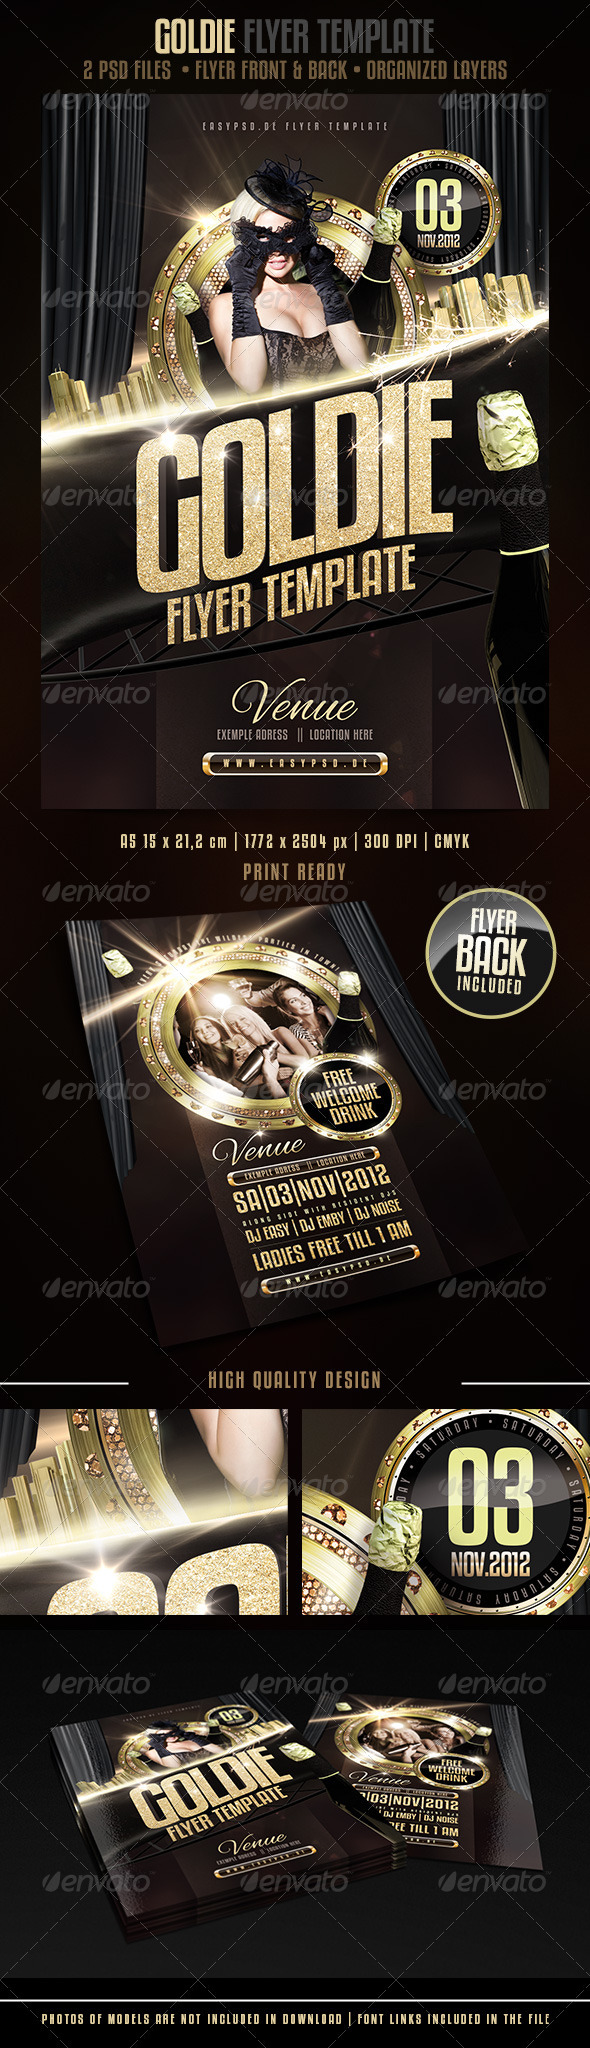 GOLDIE Flyer Template